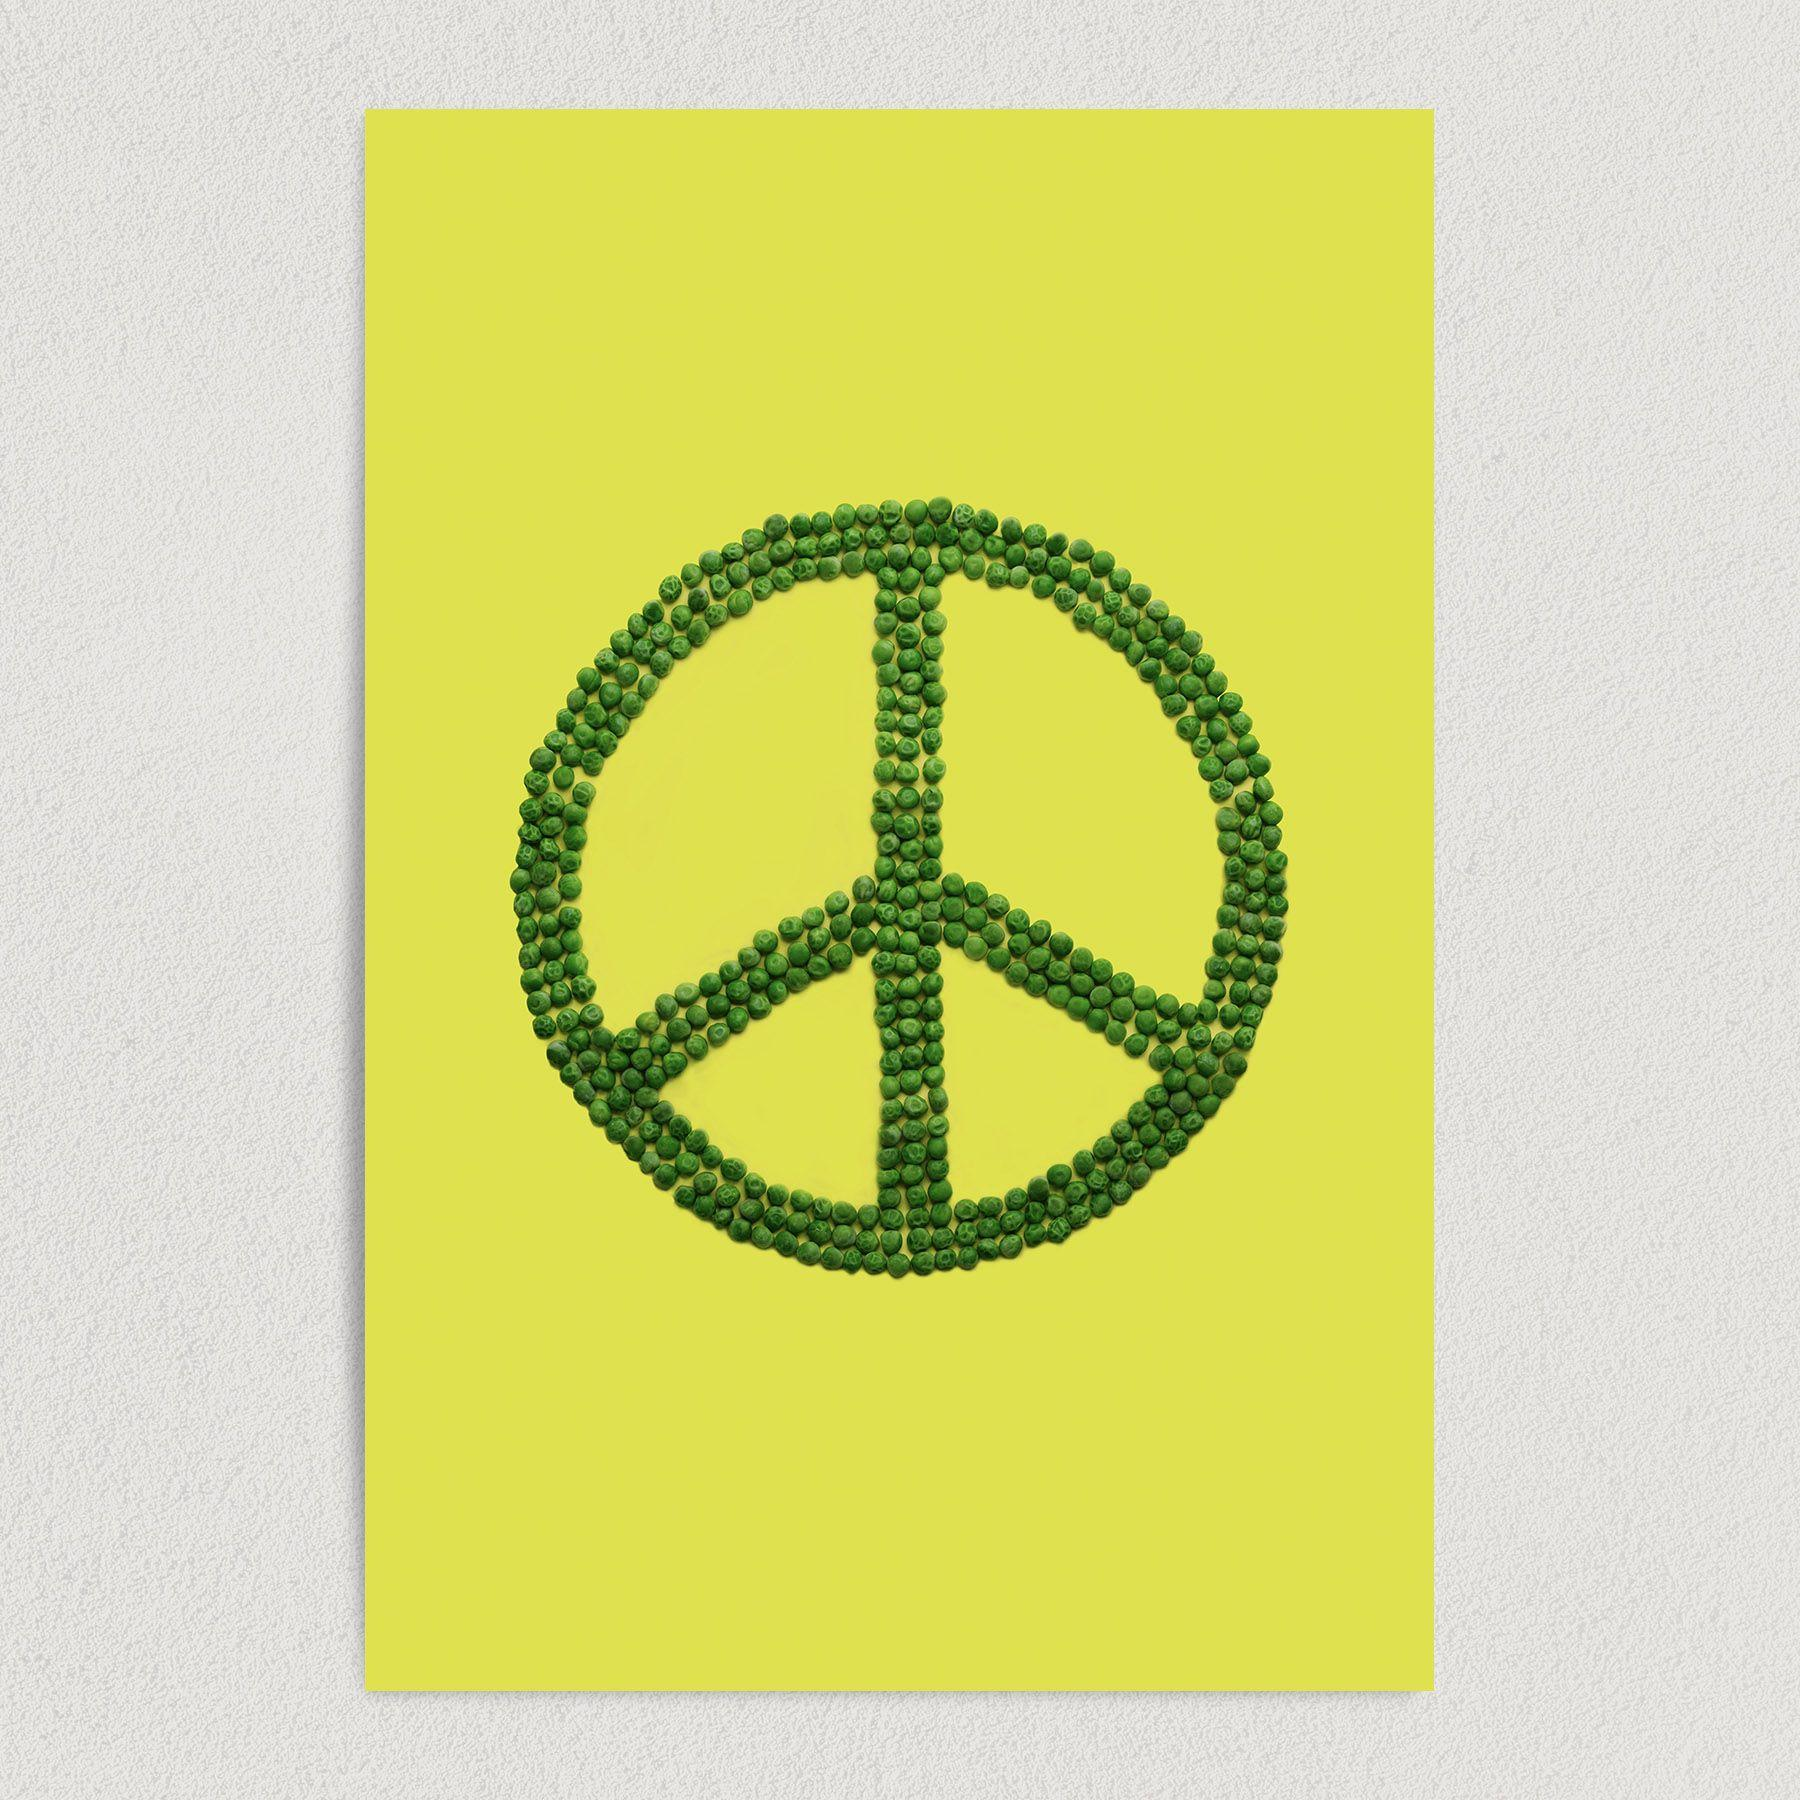 Peas To All Cheerful Peace Art Print Poster 12″ x 18″ Wall Art R1003